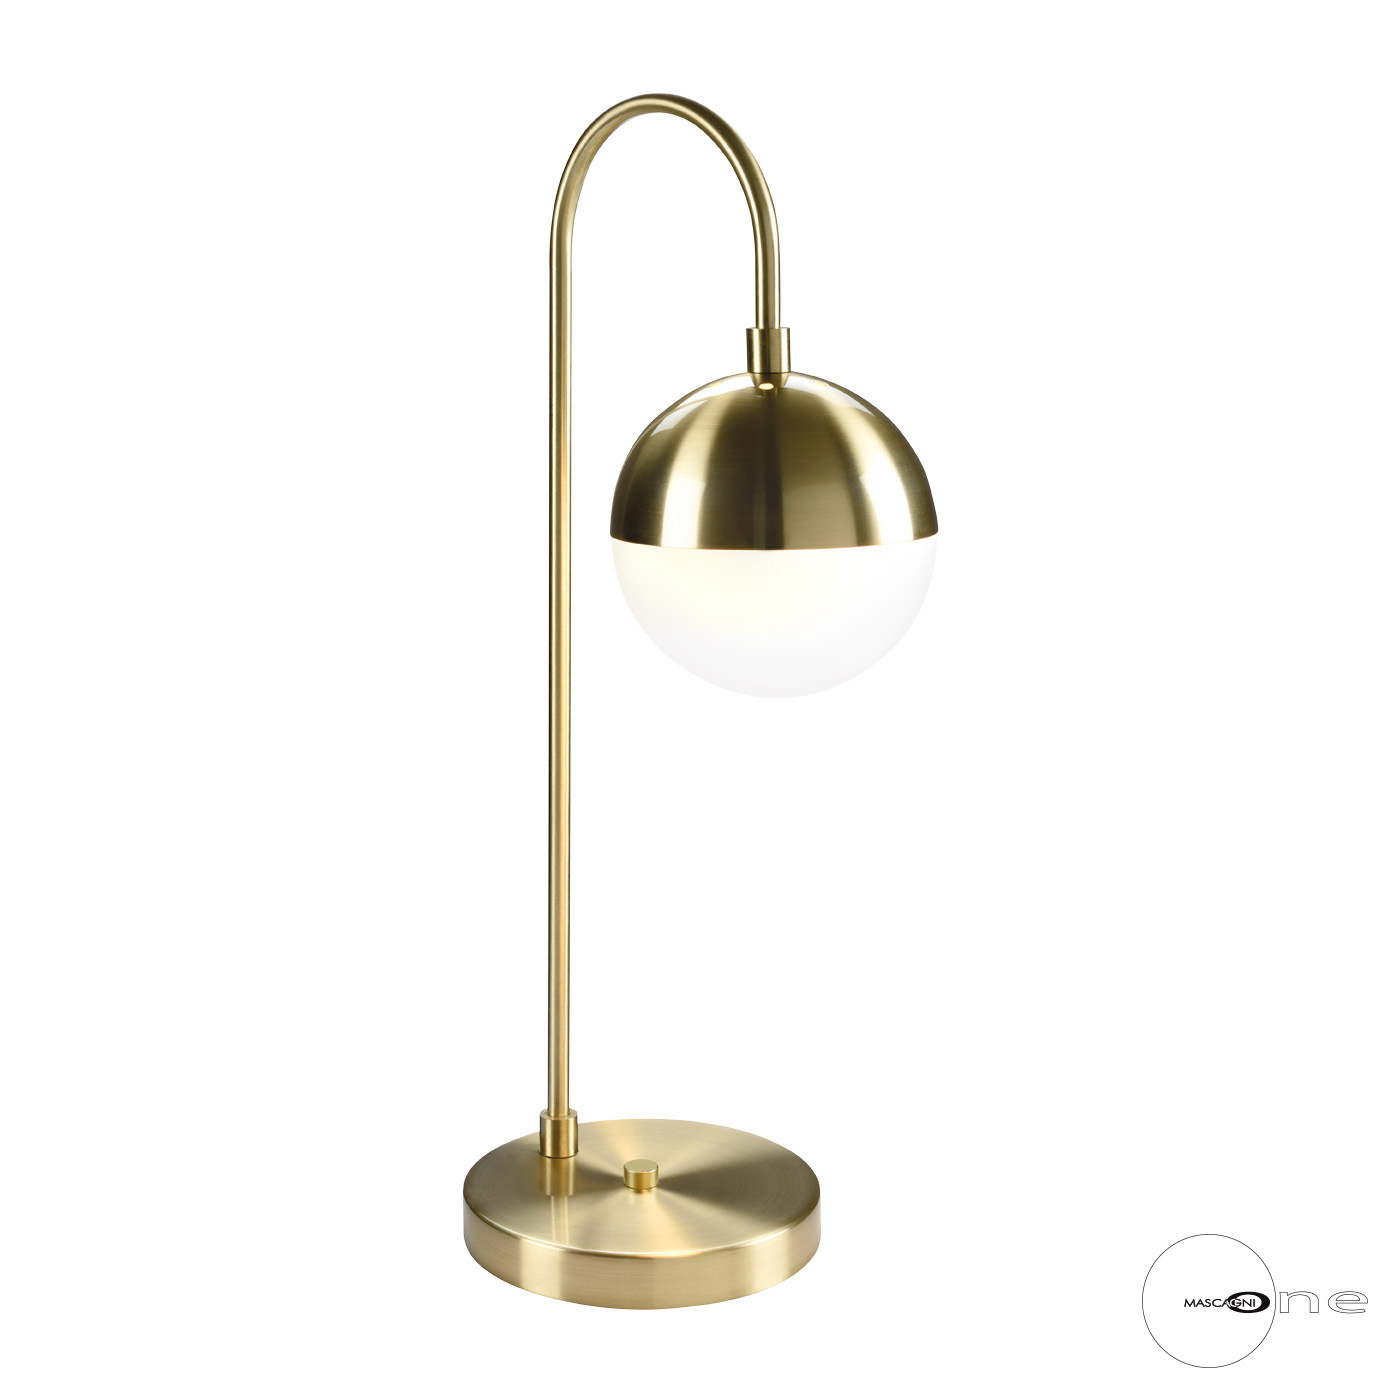 Art Mascagni O1505 LAMP